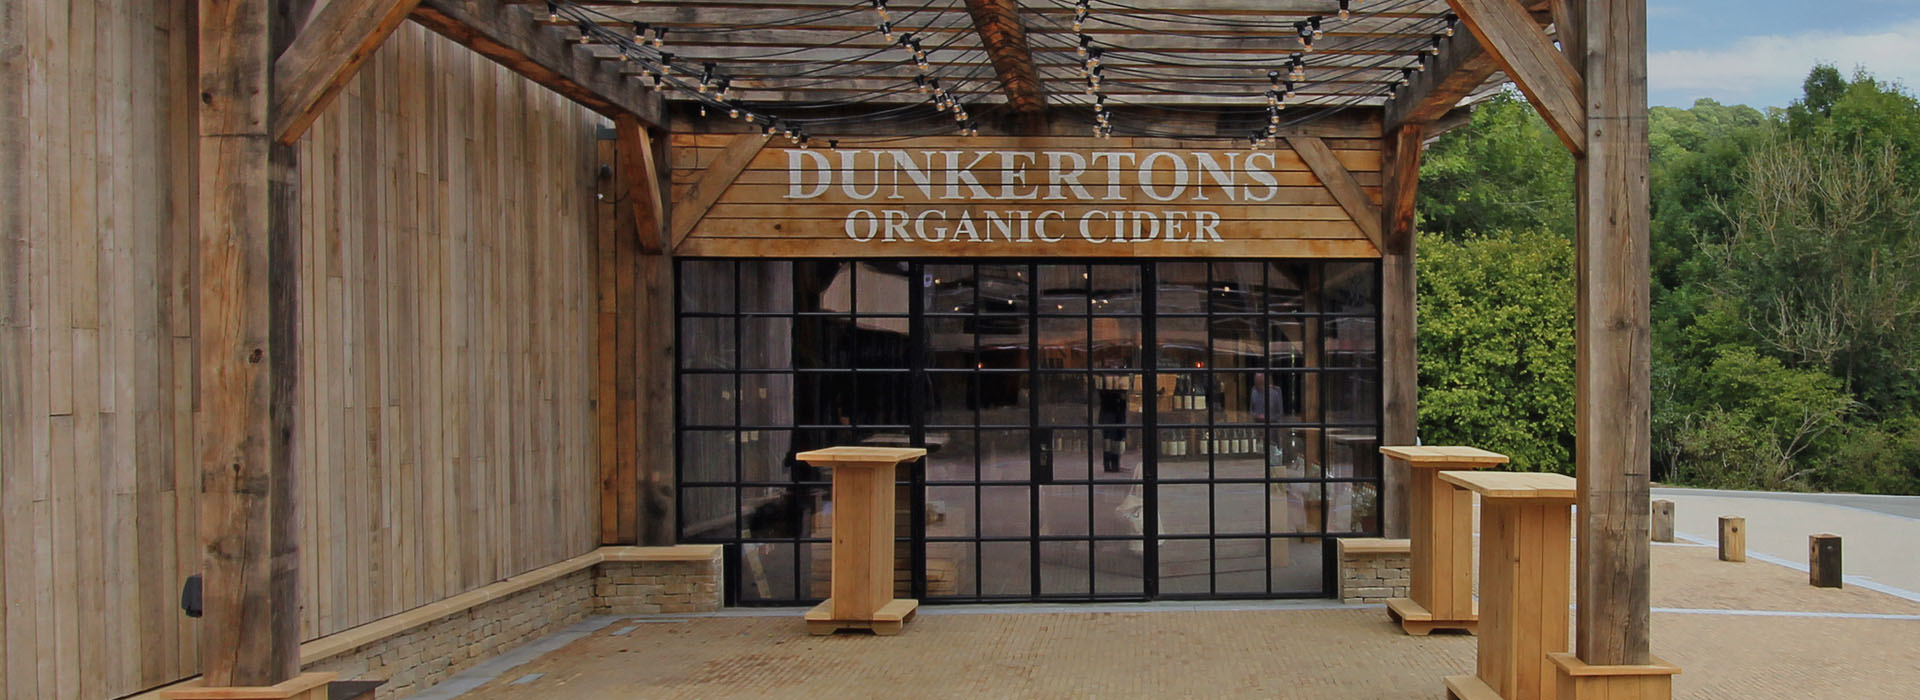 Dunkertons Cider by contractors Dowdeswell Estates